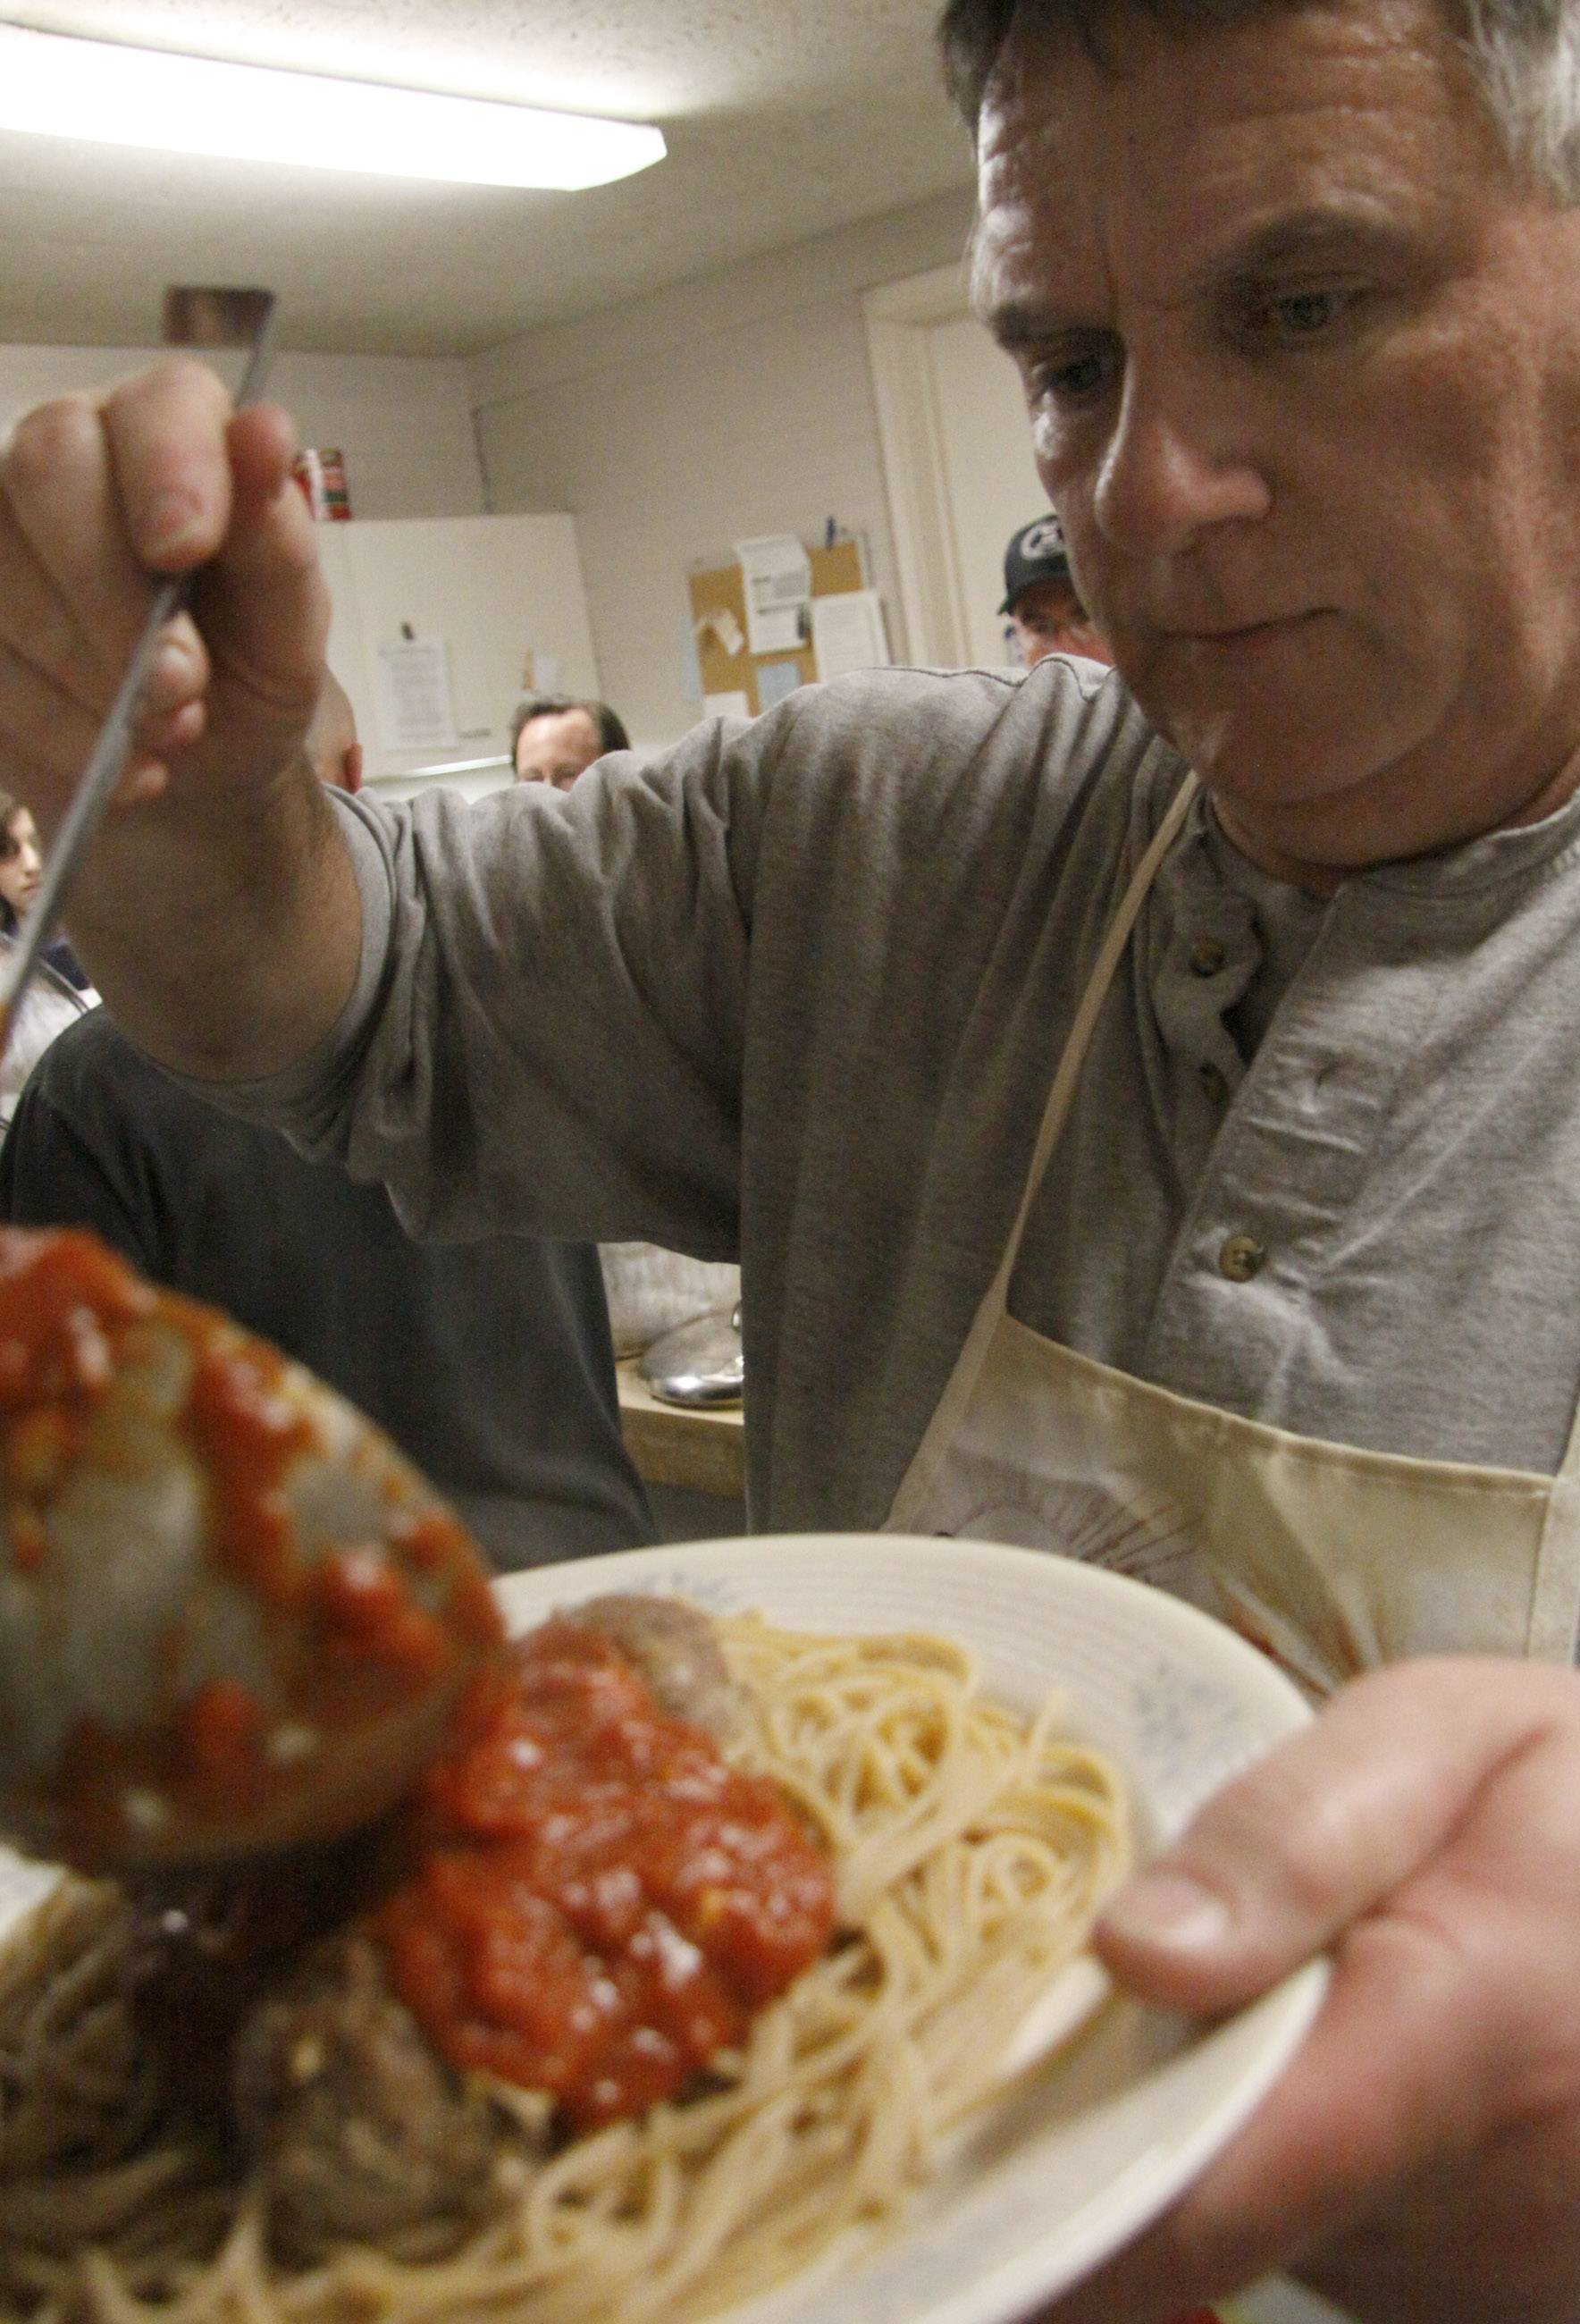 Since 2009, St. Charles Episcopal Church member Joe Ryan, pictured, and Matt Rhead have hosted Two Guys and Free Spaghetti, a free dinner to anyone in the community.